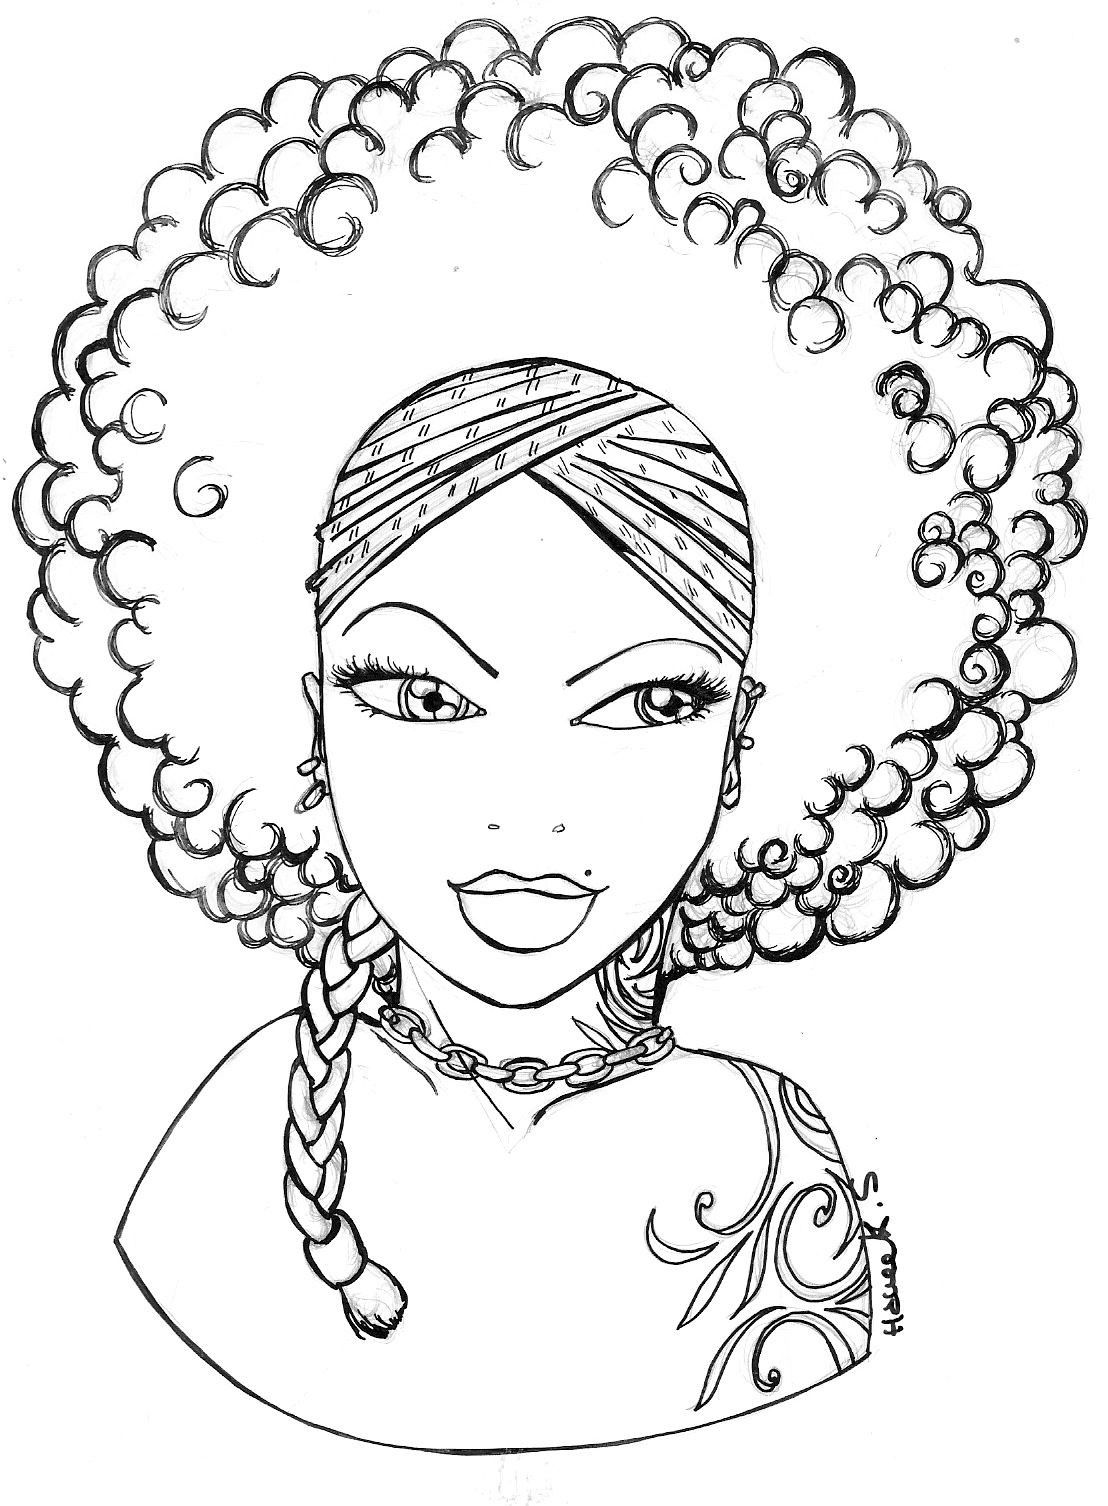 The Best Ideas For Coloring Pages For Black Girls Best Coloring Pages Inspiration And Ideas Coloring Pages For Girls Coloring Pages Coloring Books